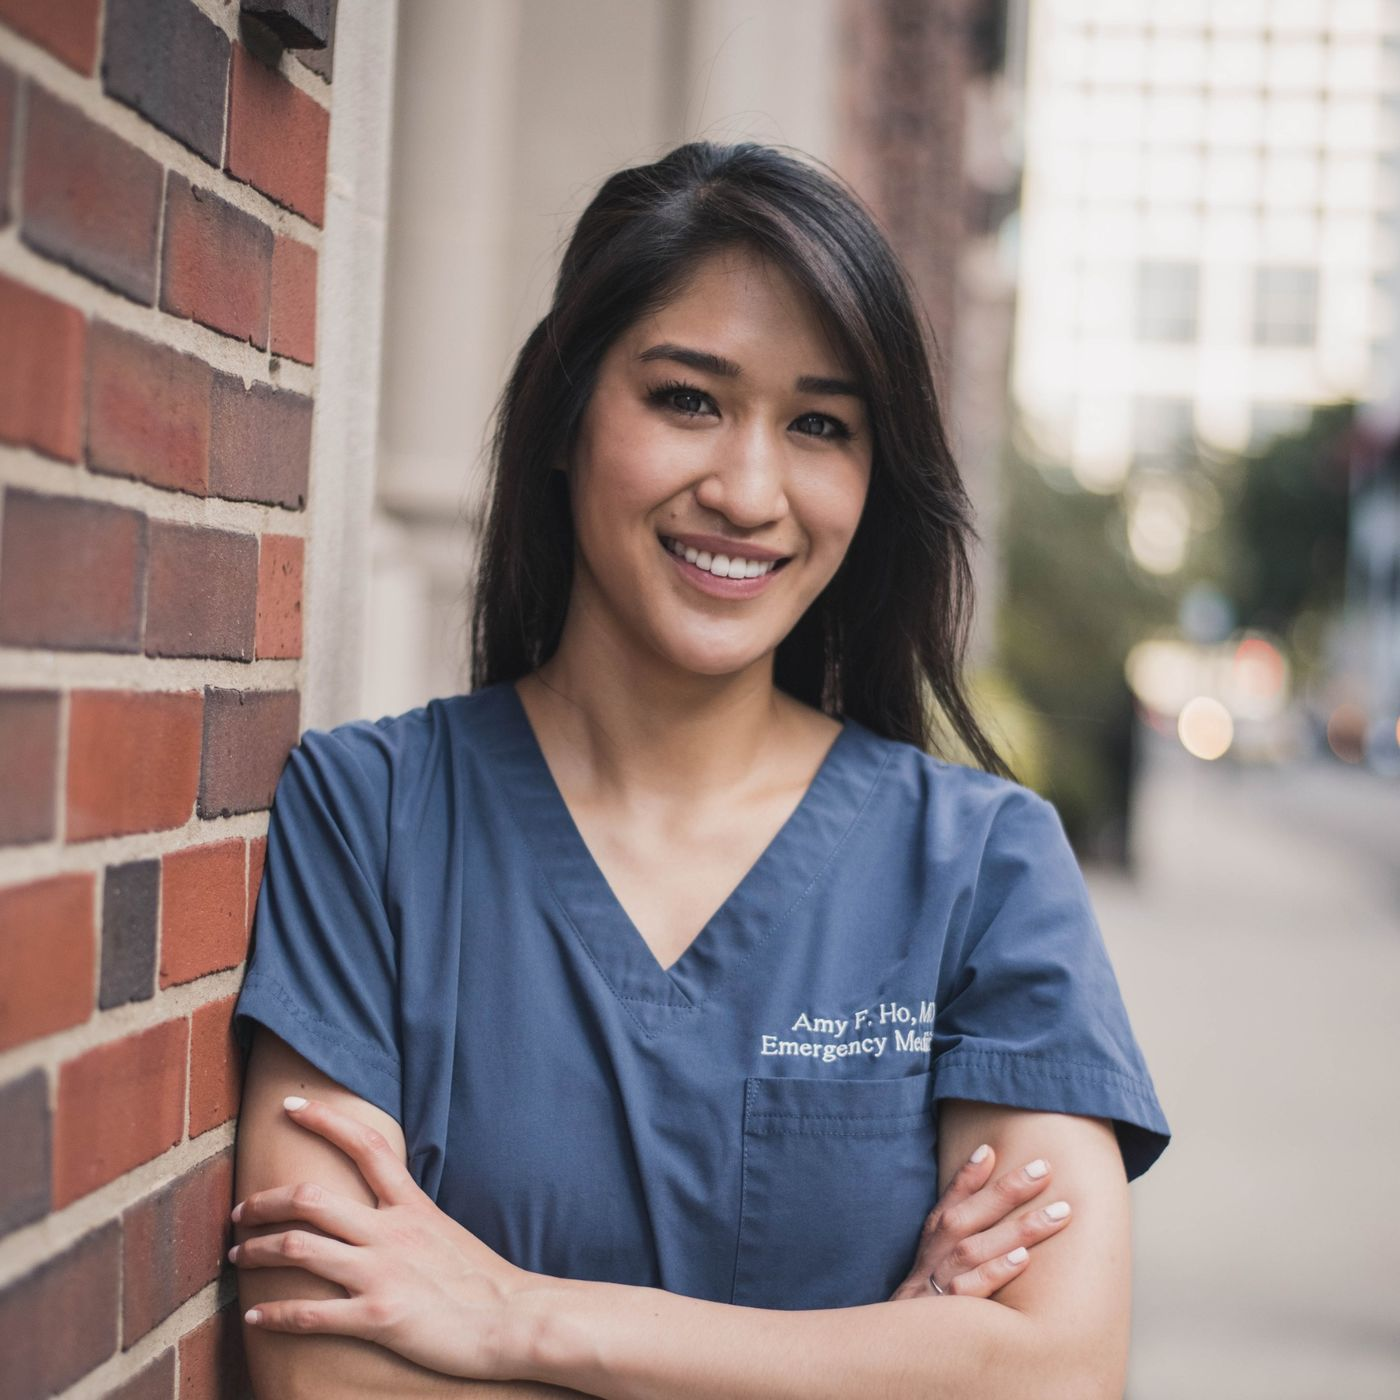 #5 - Women's Empowerment, Writing, and Healthcare Policy with Dr. Amy Faith Ho